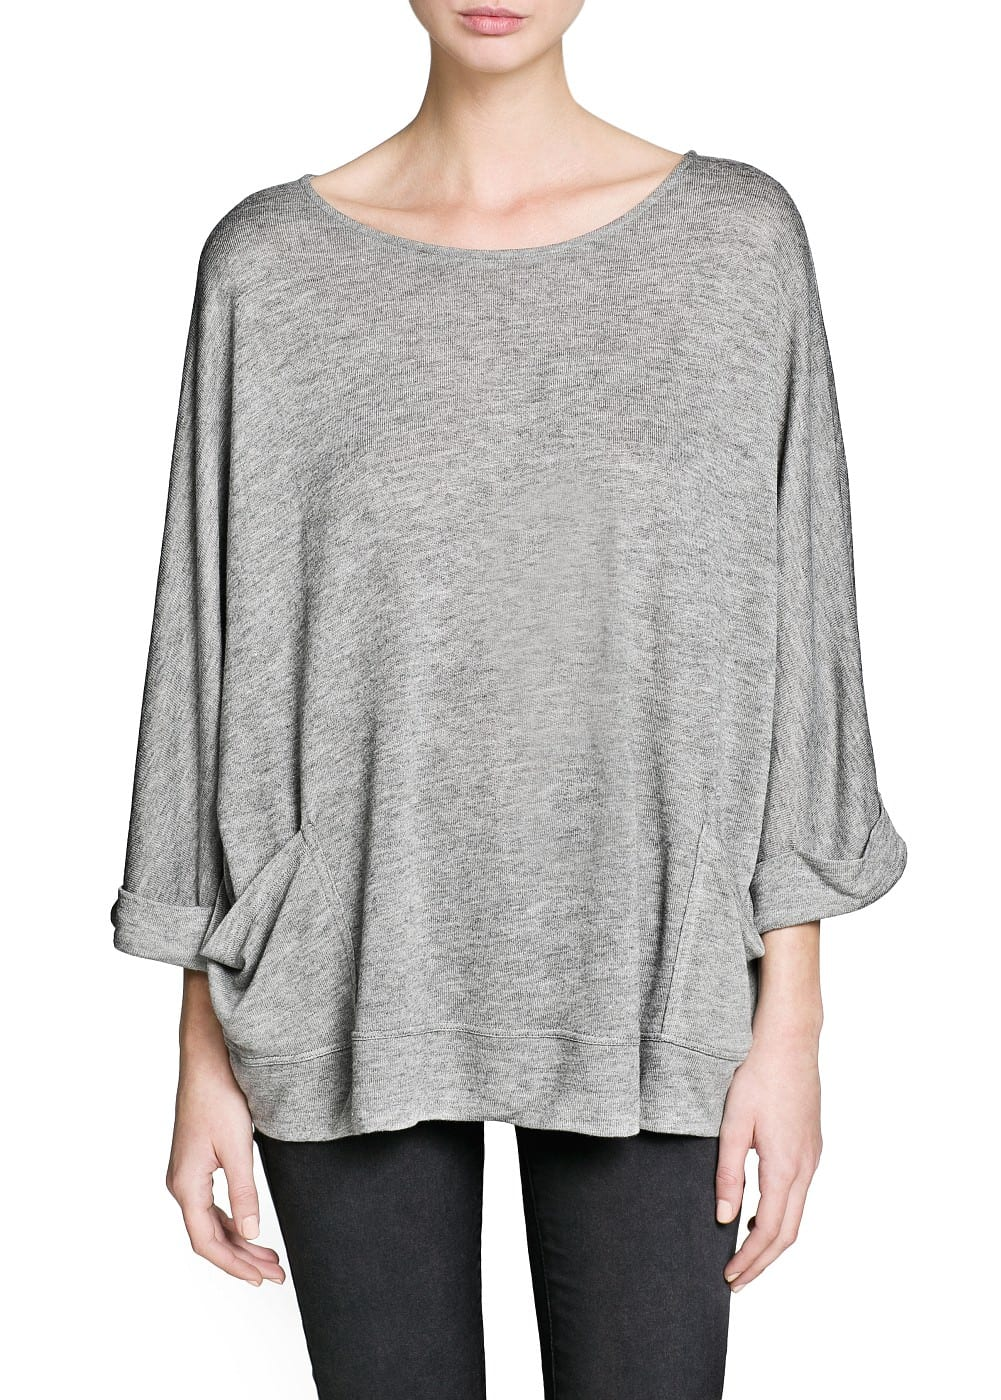 Dolman sleeve pocket t-shirt